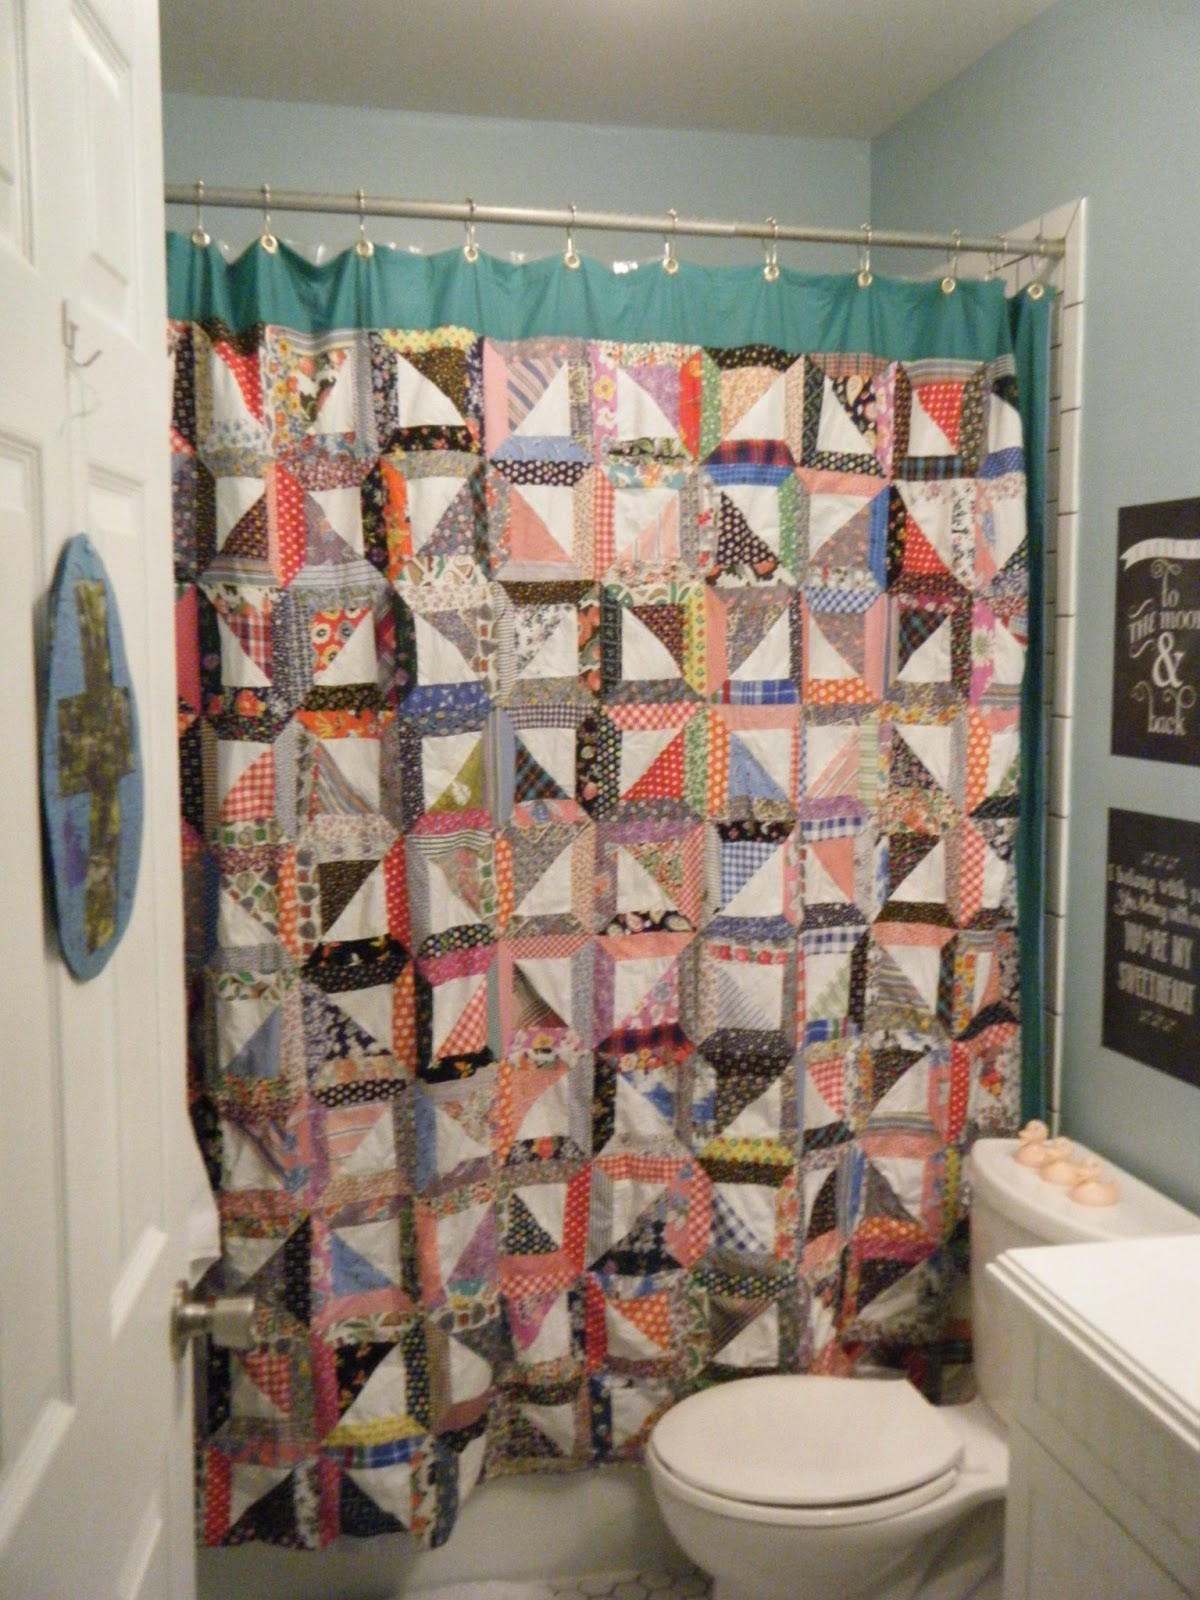 Makin' Projiks: Quilt Top Shower Curtain Obsessed Regarding 2017 Shower Curtain Wall Art (View 20 of 20)